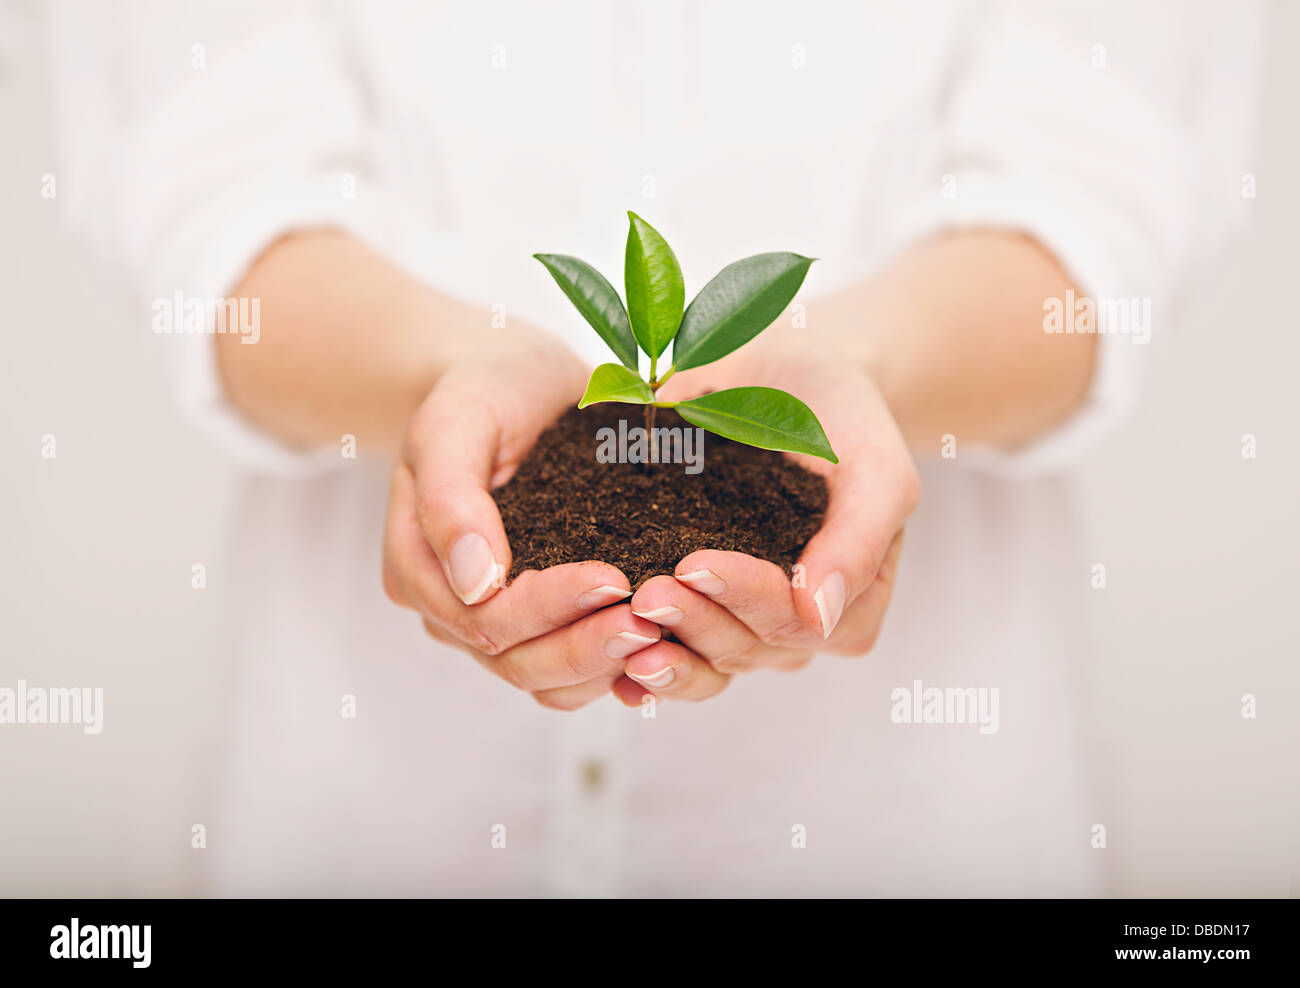 Woman's hand holding young plant, ecology concept Photo Stock